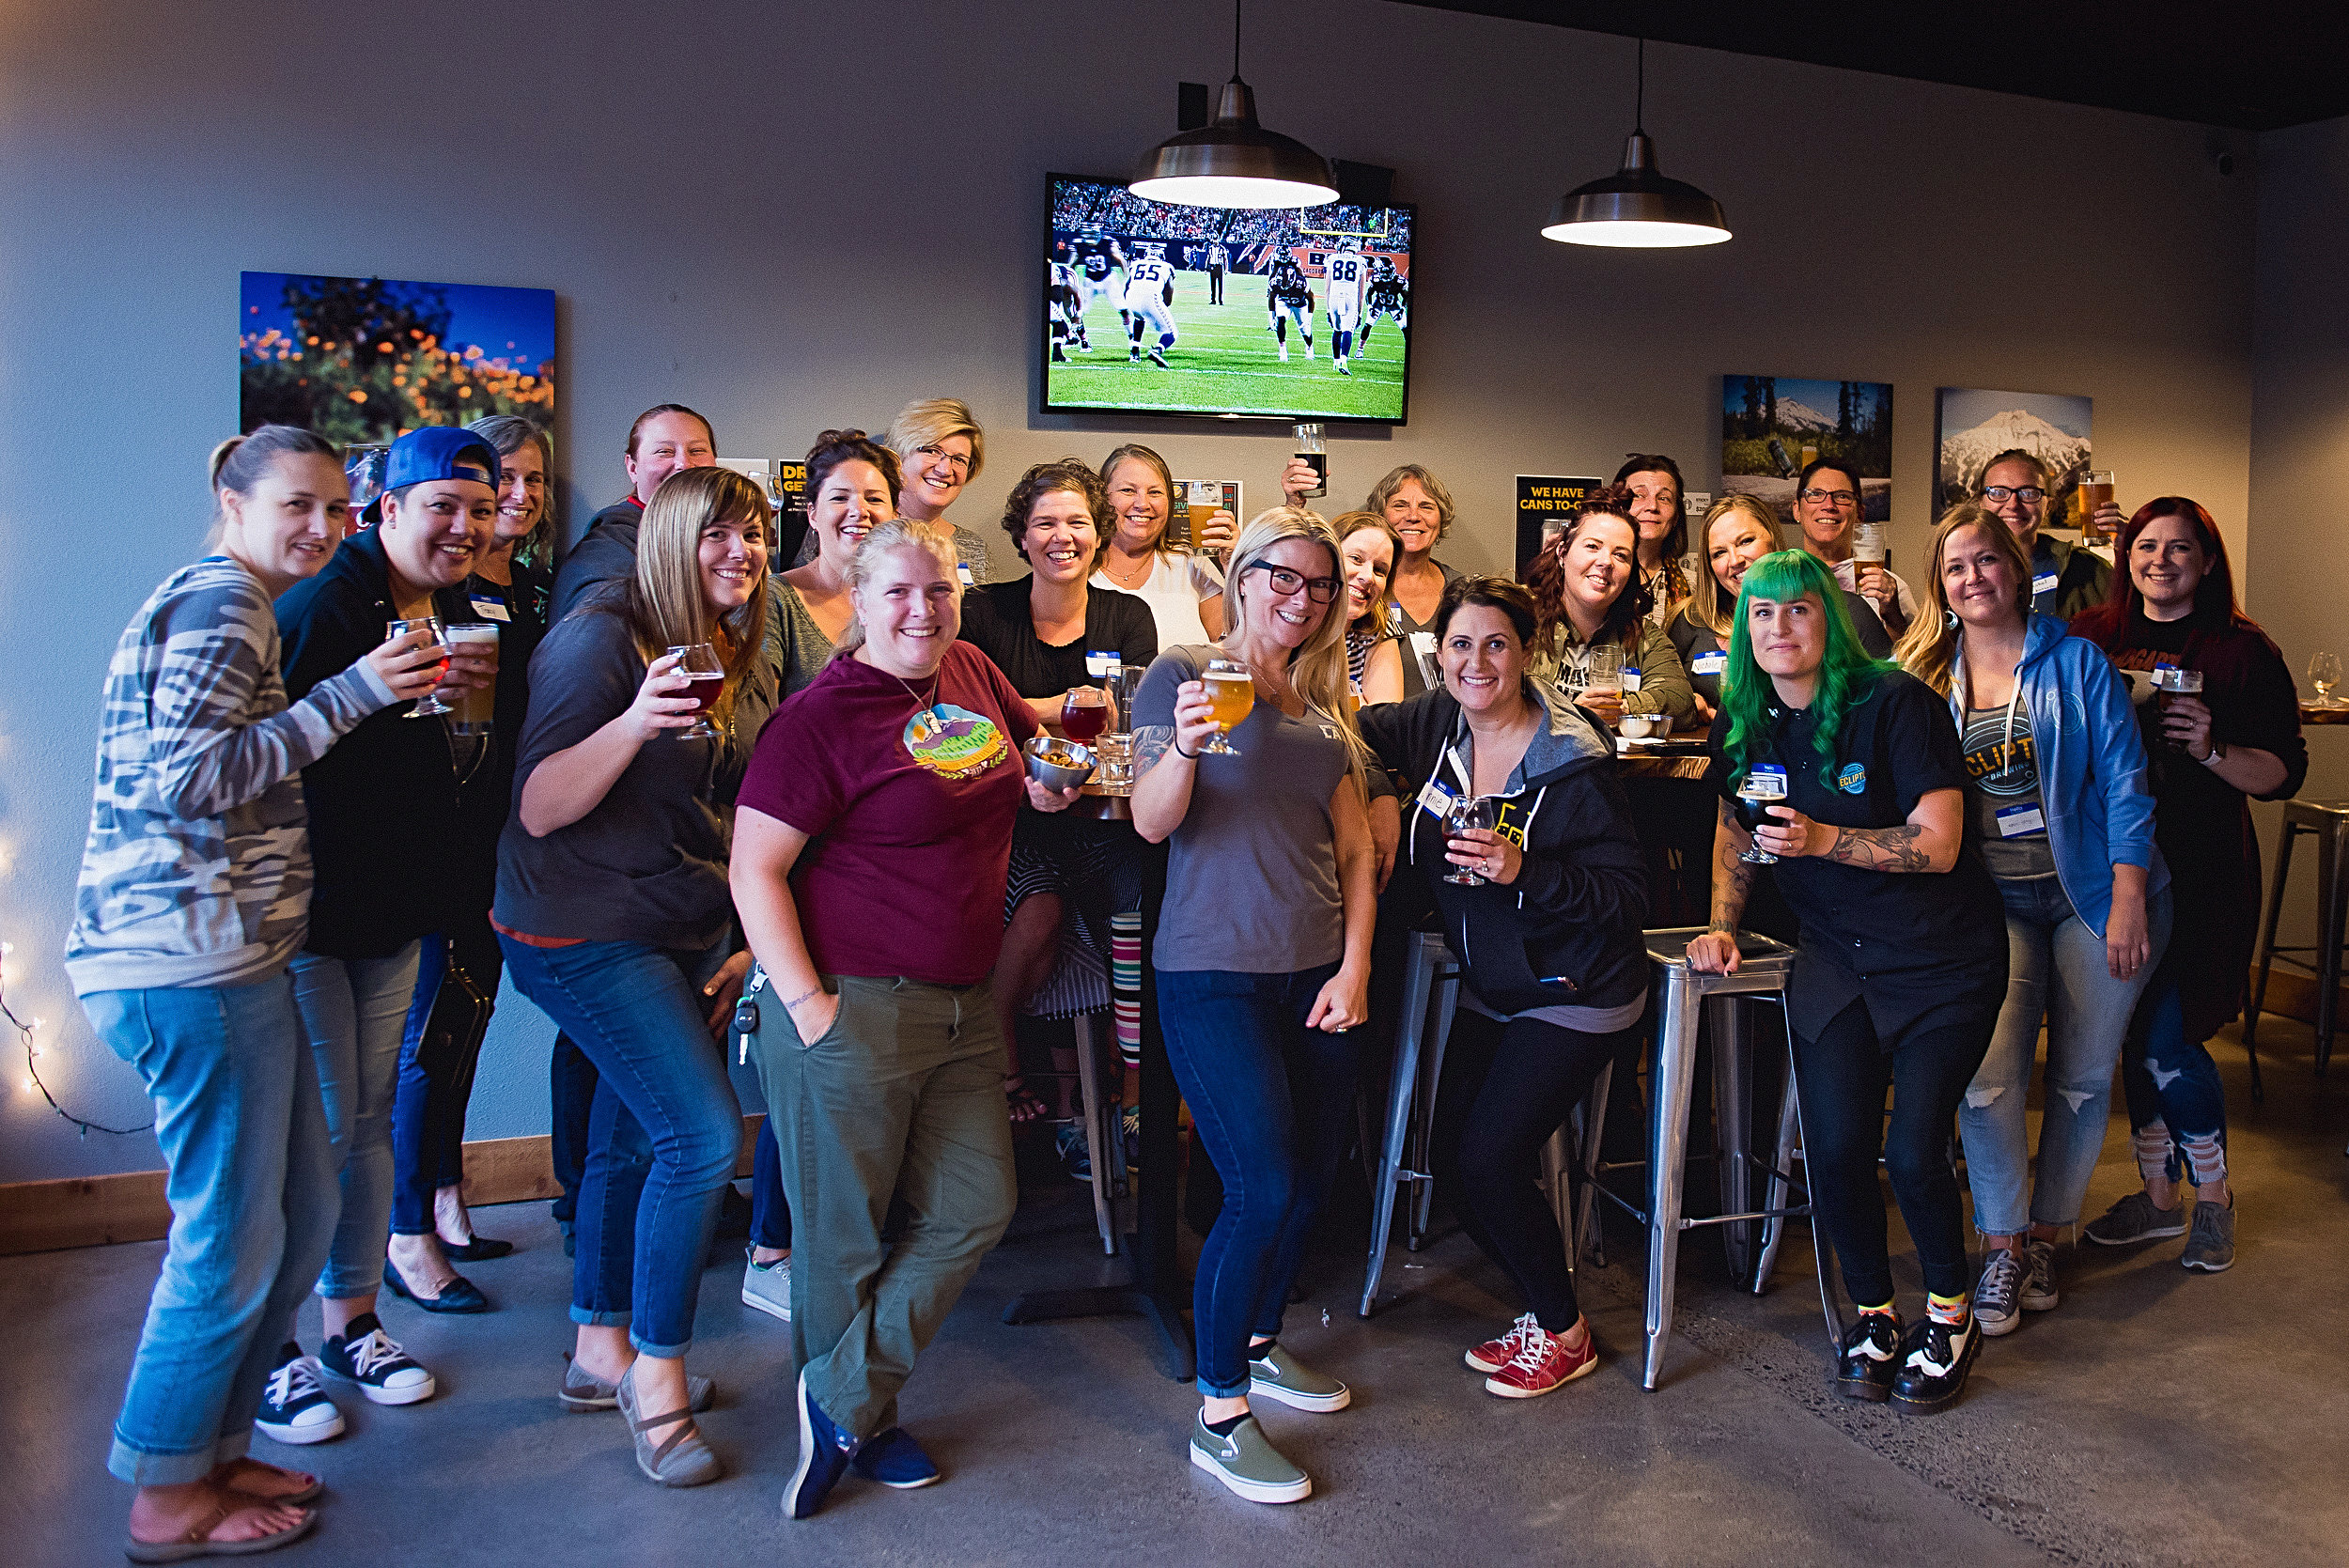 Back room is great for groups! This is our Couve Brew Bevy gathering that meets up monthly!